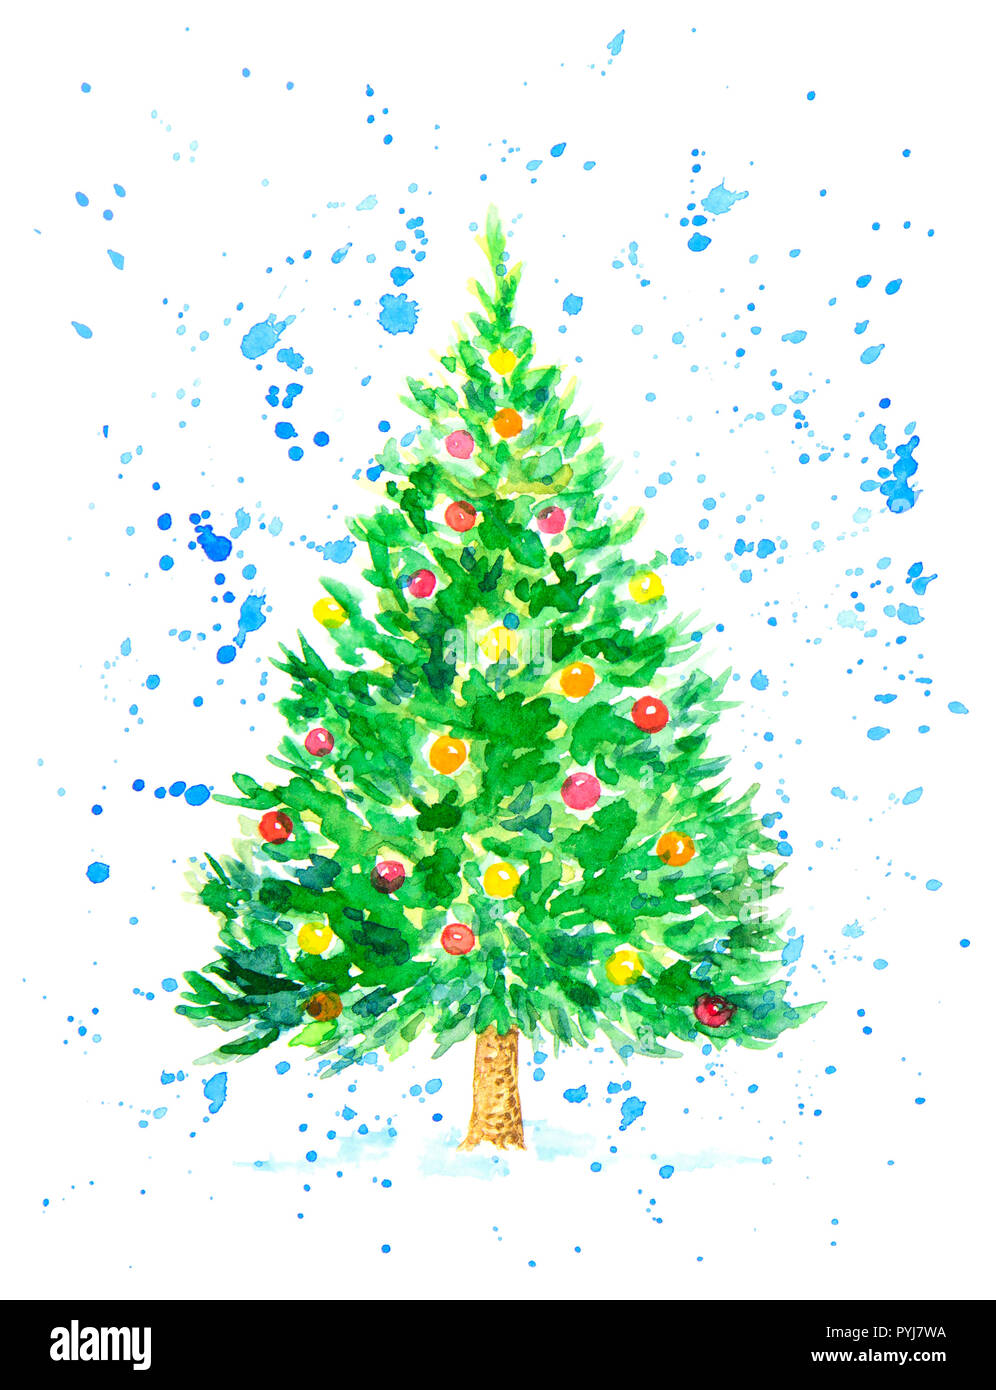 Christmas Fir Tree with Balls Covered by Snowflakes as Postcard. Watercolor Hand Drawn and Painted. Isolated on White Background Stock Photo